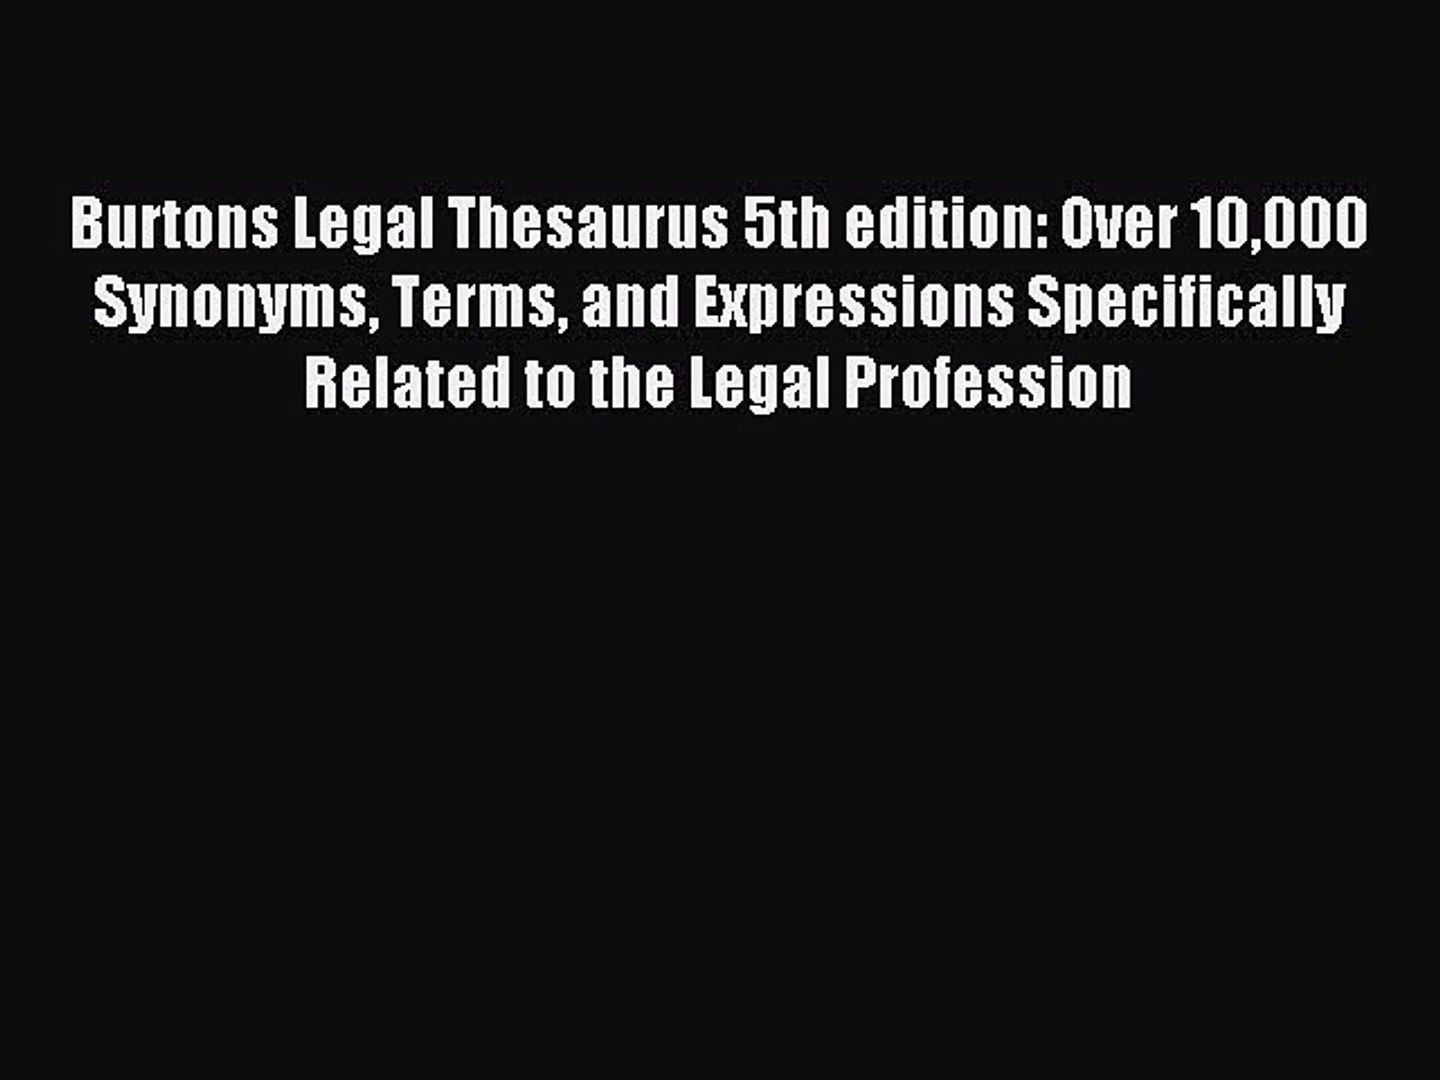 Download Burtons Legal Thesaurus 5th edition: Over 10000 Synonyms Terms and Expressions Specifically